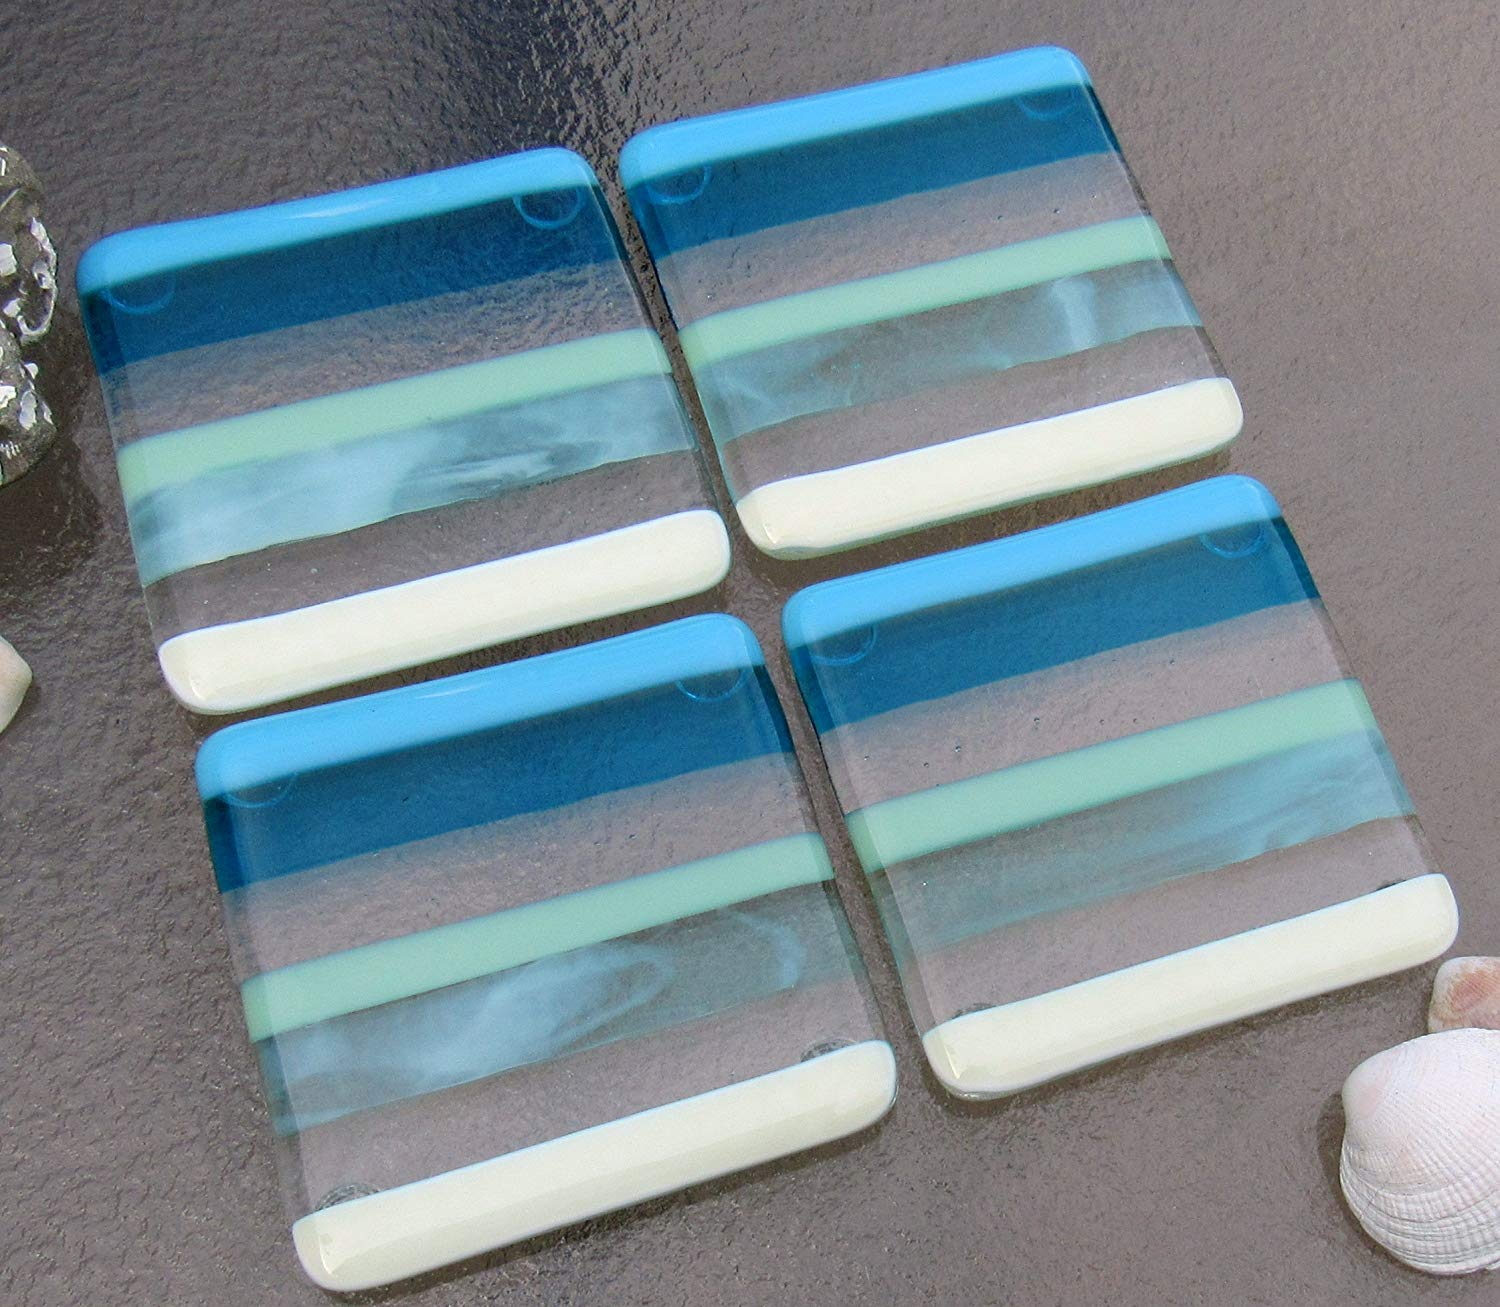 Fused Glass Coasters Beach House Decor Ocean Beach Coasters with Blue Stripes Summer Glass Set of 4 Coasters Beach House Decor